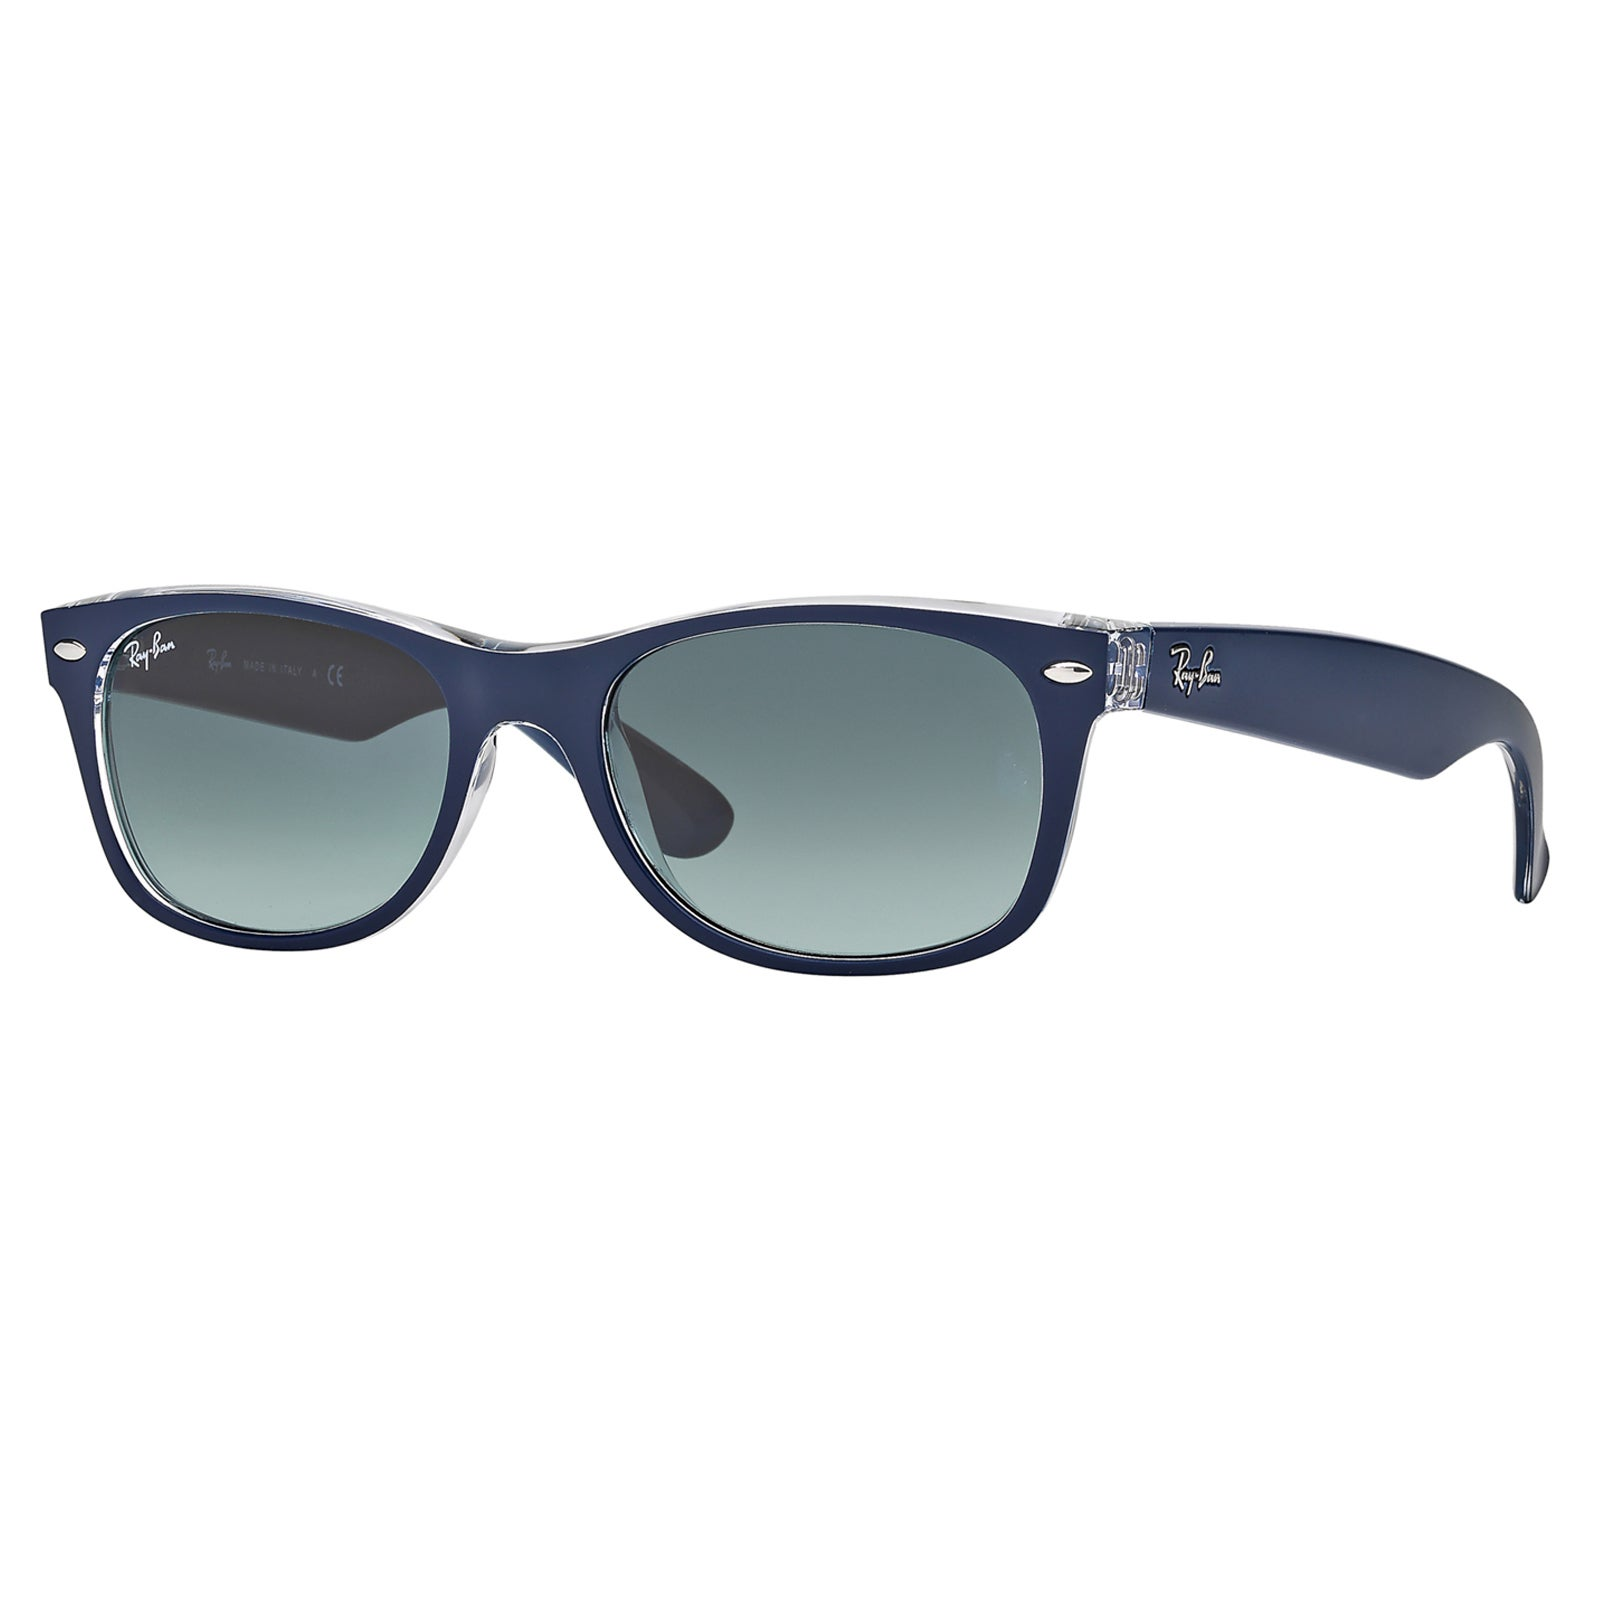 Ray-Ban RB2132 605371 New Wayfarer Color Mix Blue/Clear Frame Grey ...